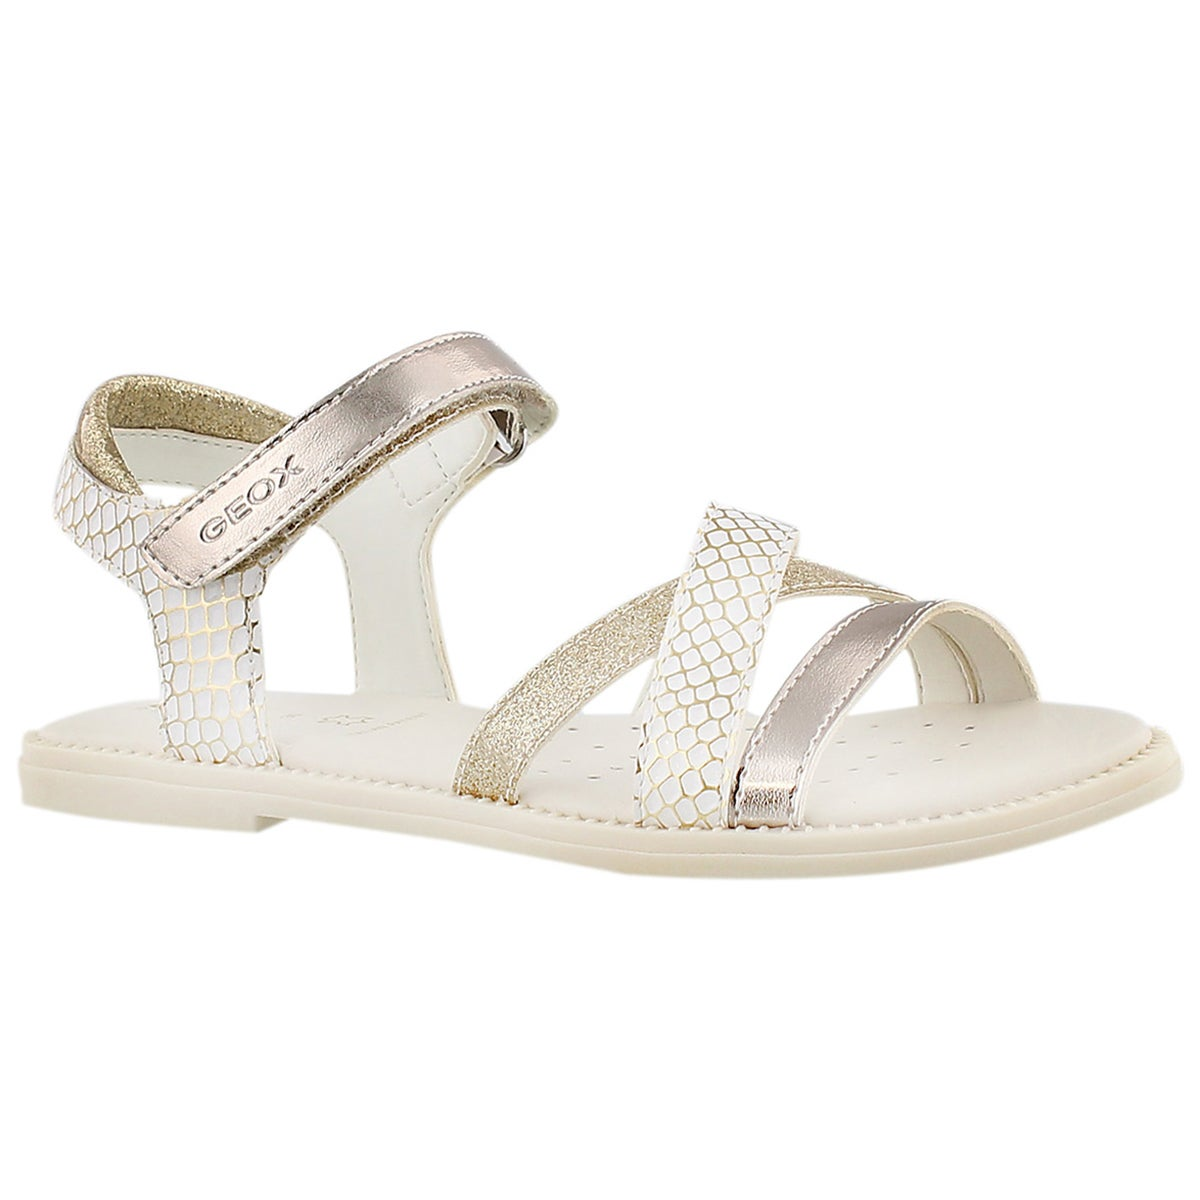 Sandale habill�e Karly, blanc/or, filles